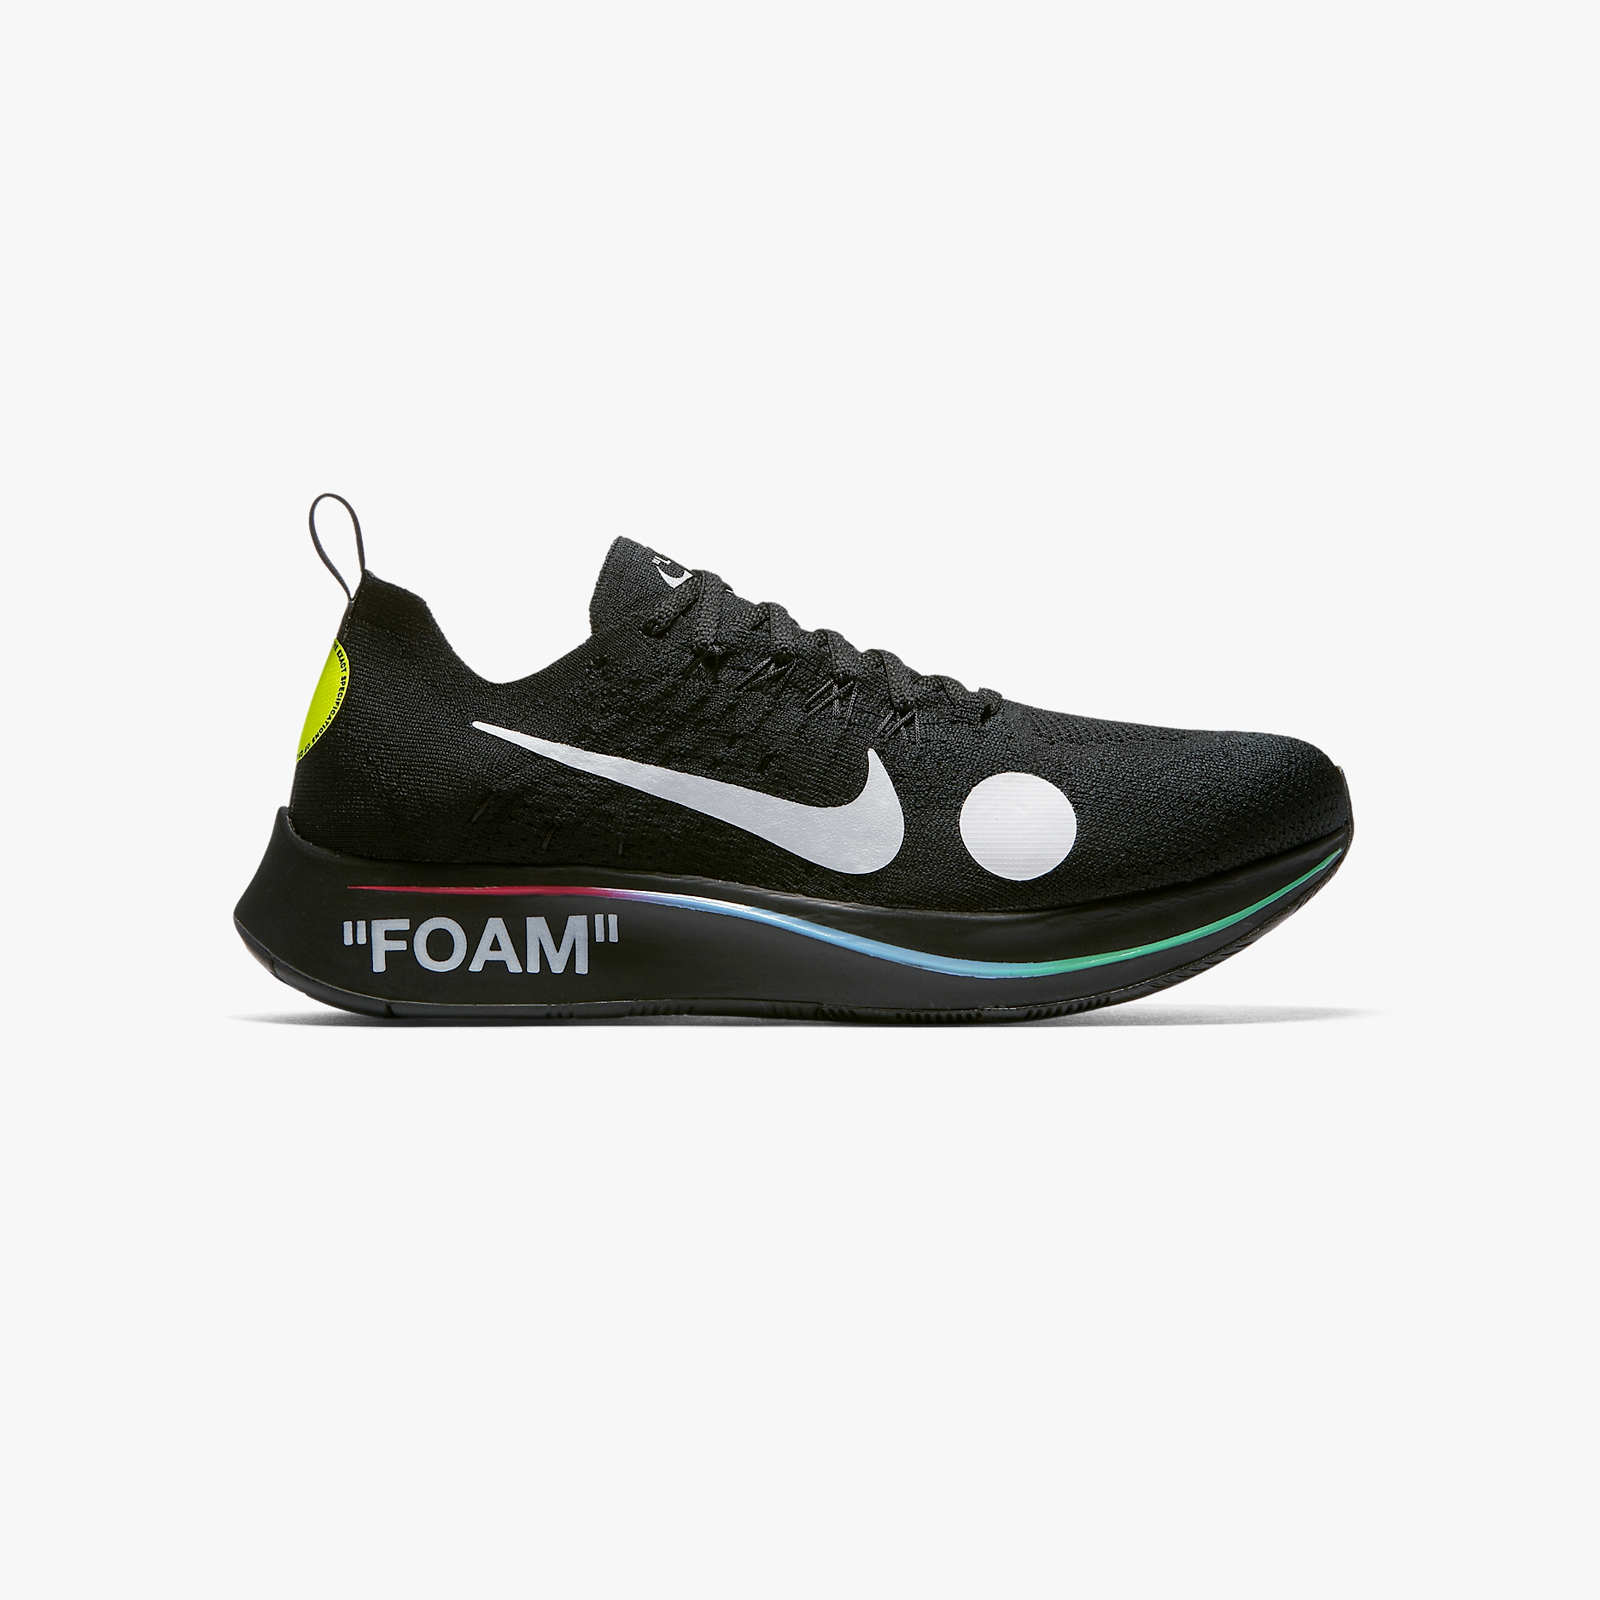 86aceda79dffa2 Nike Zoom Fly Mercurial Flyknit   Off-White - Ao2115-001 ...